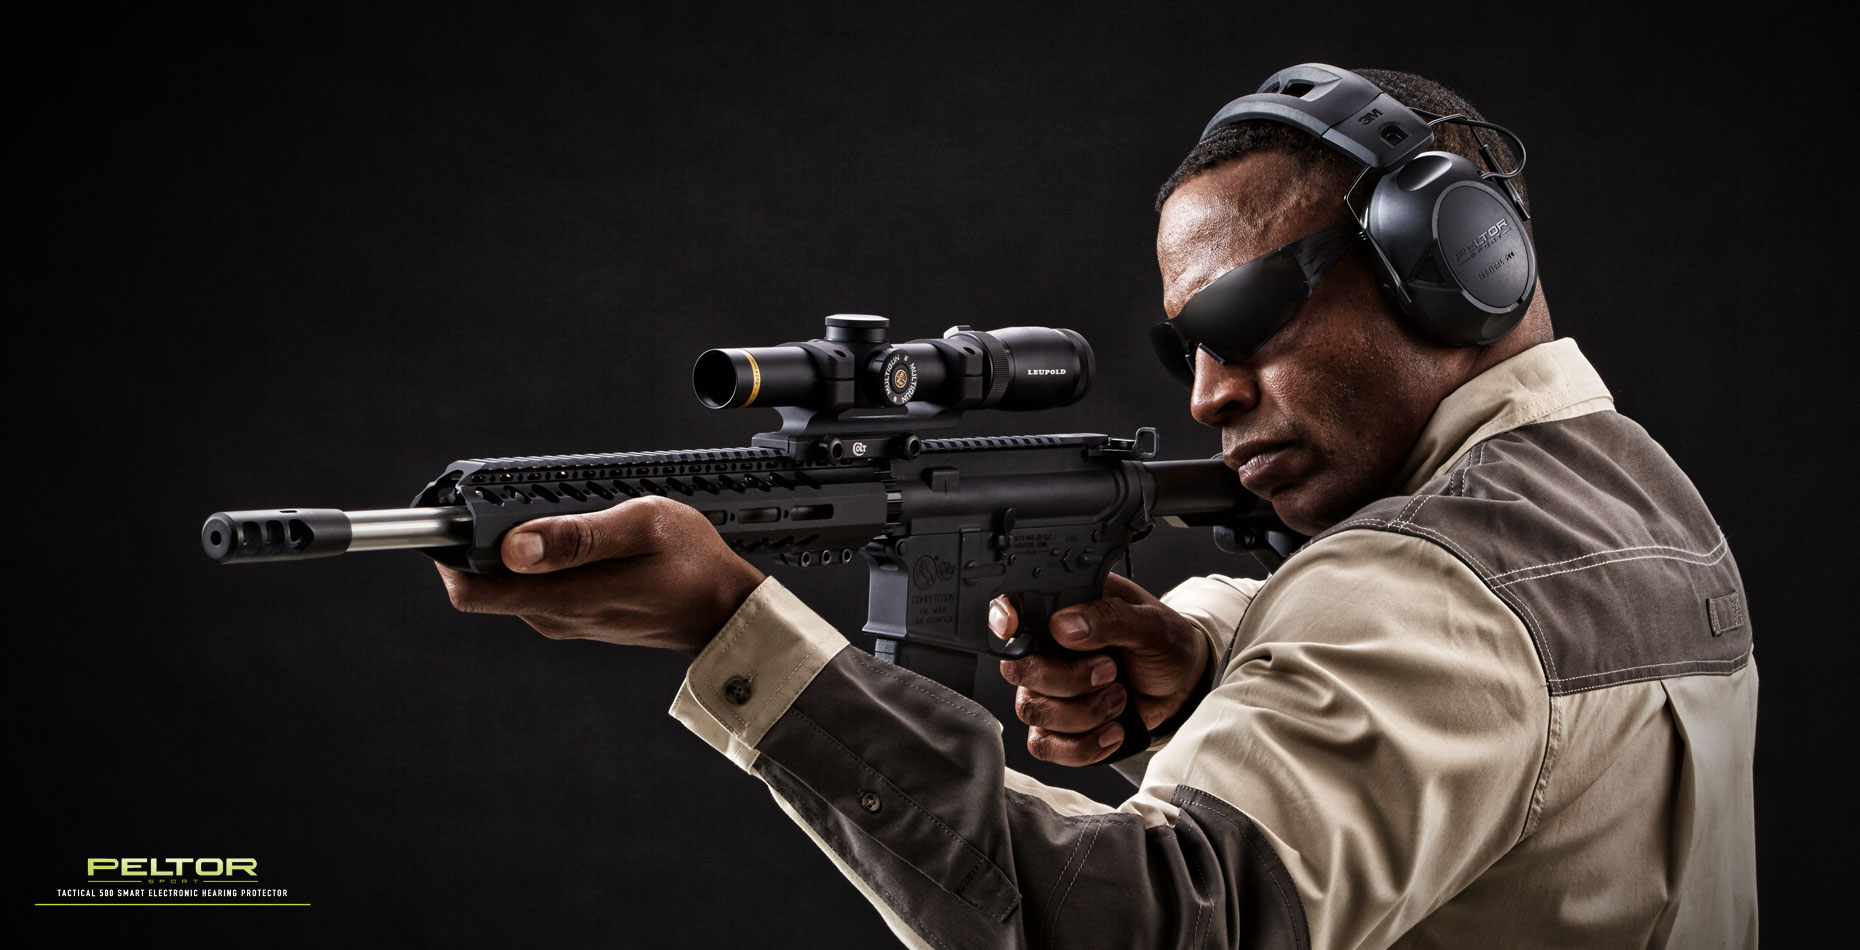 Peltor hearing protection/man/assault rifle/product photography